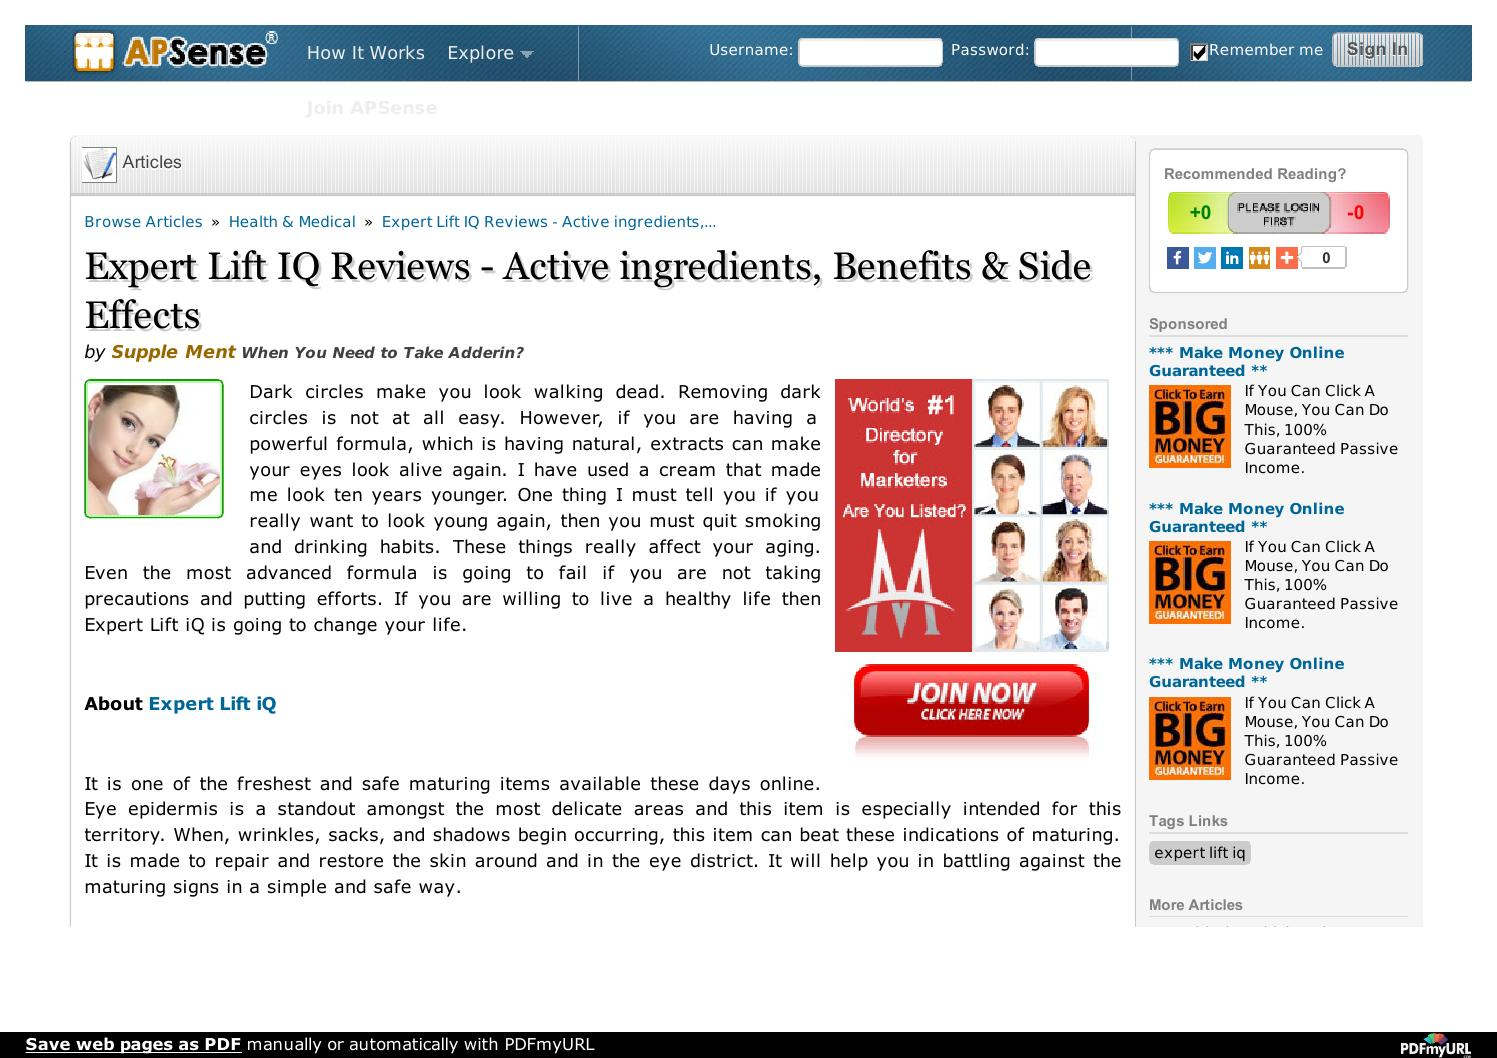 expert lift iq active ingredients benefits reviews by supplementq issuu. Black Bedroom Furniture Sets. Home Design Ideas